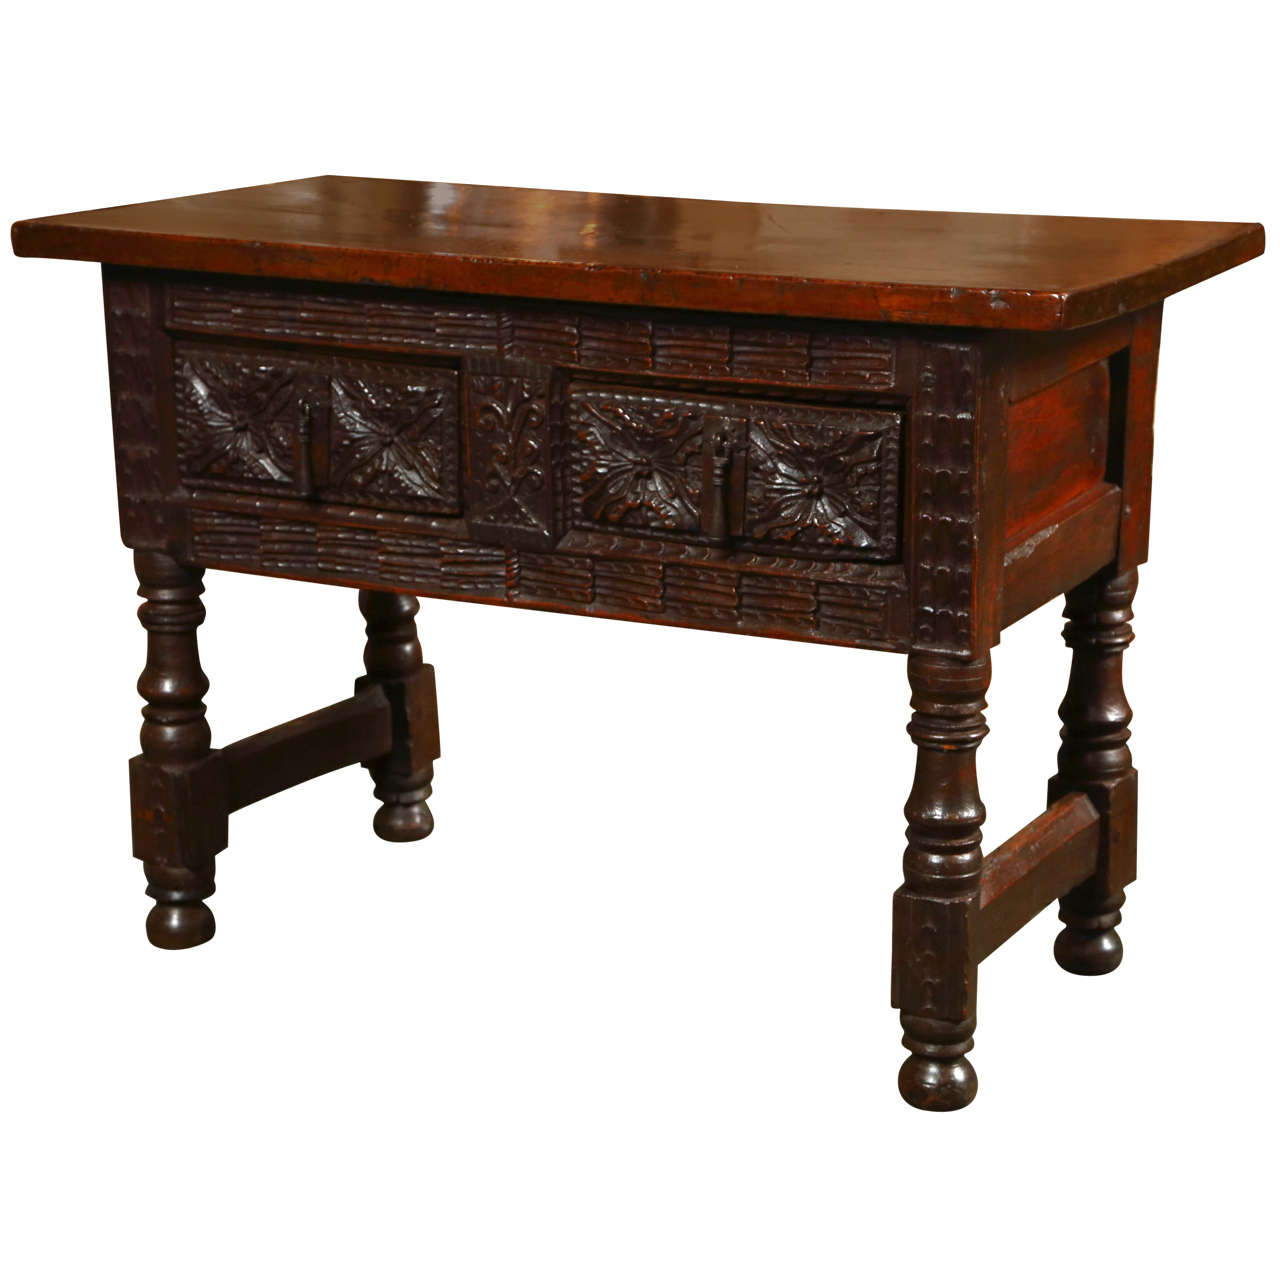 Carved walnut spanish table for sale at 1stdibs for Table in spanish